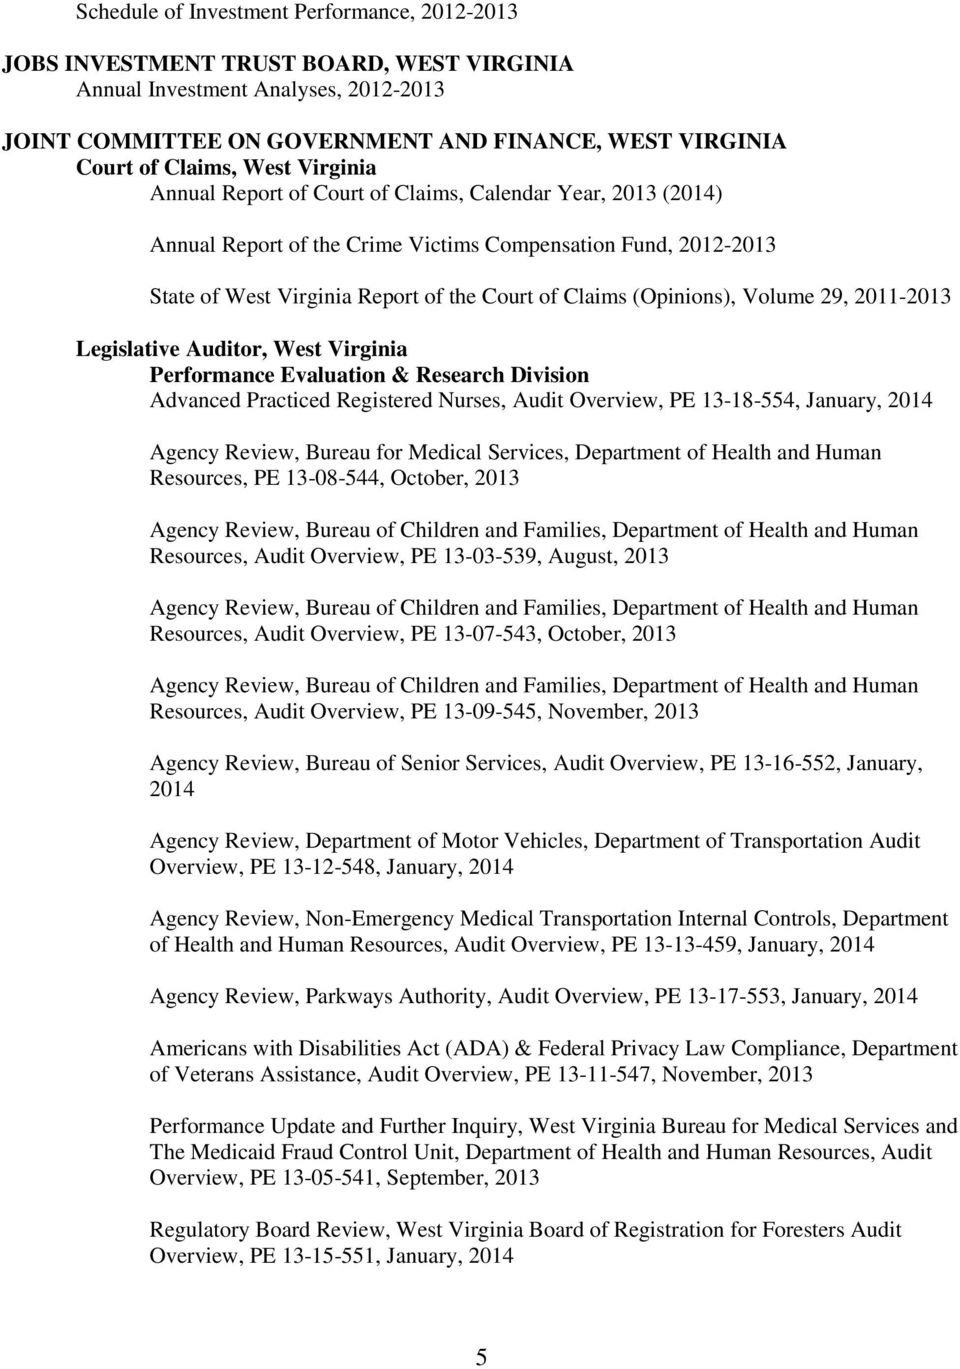 (Opinions), Volume 29, 2011-2013 Legislative Auditor, West Virginia Performance Evaluation & Research Division Advanced Practiced Registered Nurses, Audit Overview, PE 13-18-554, January, 2014 Agency